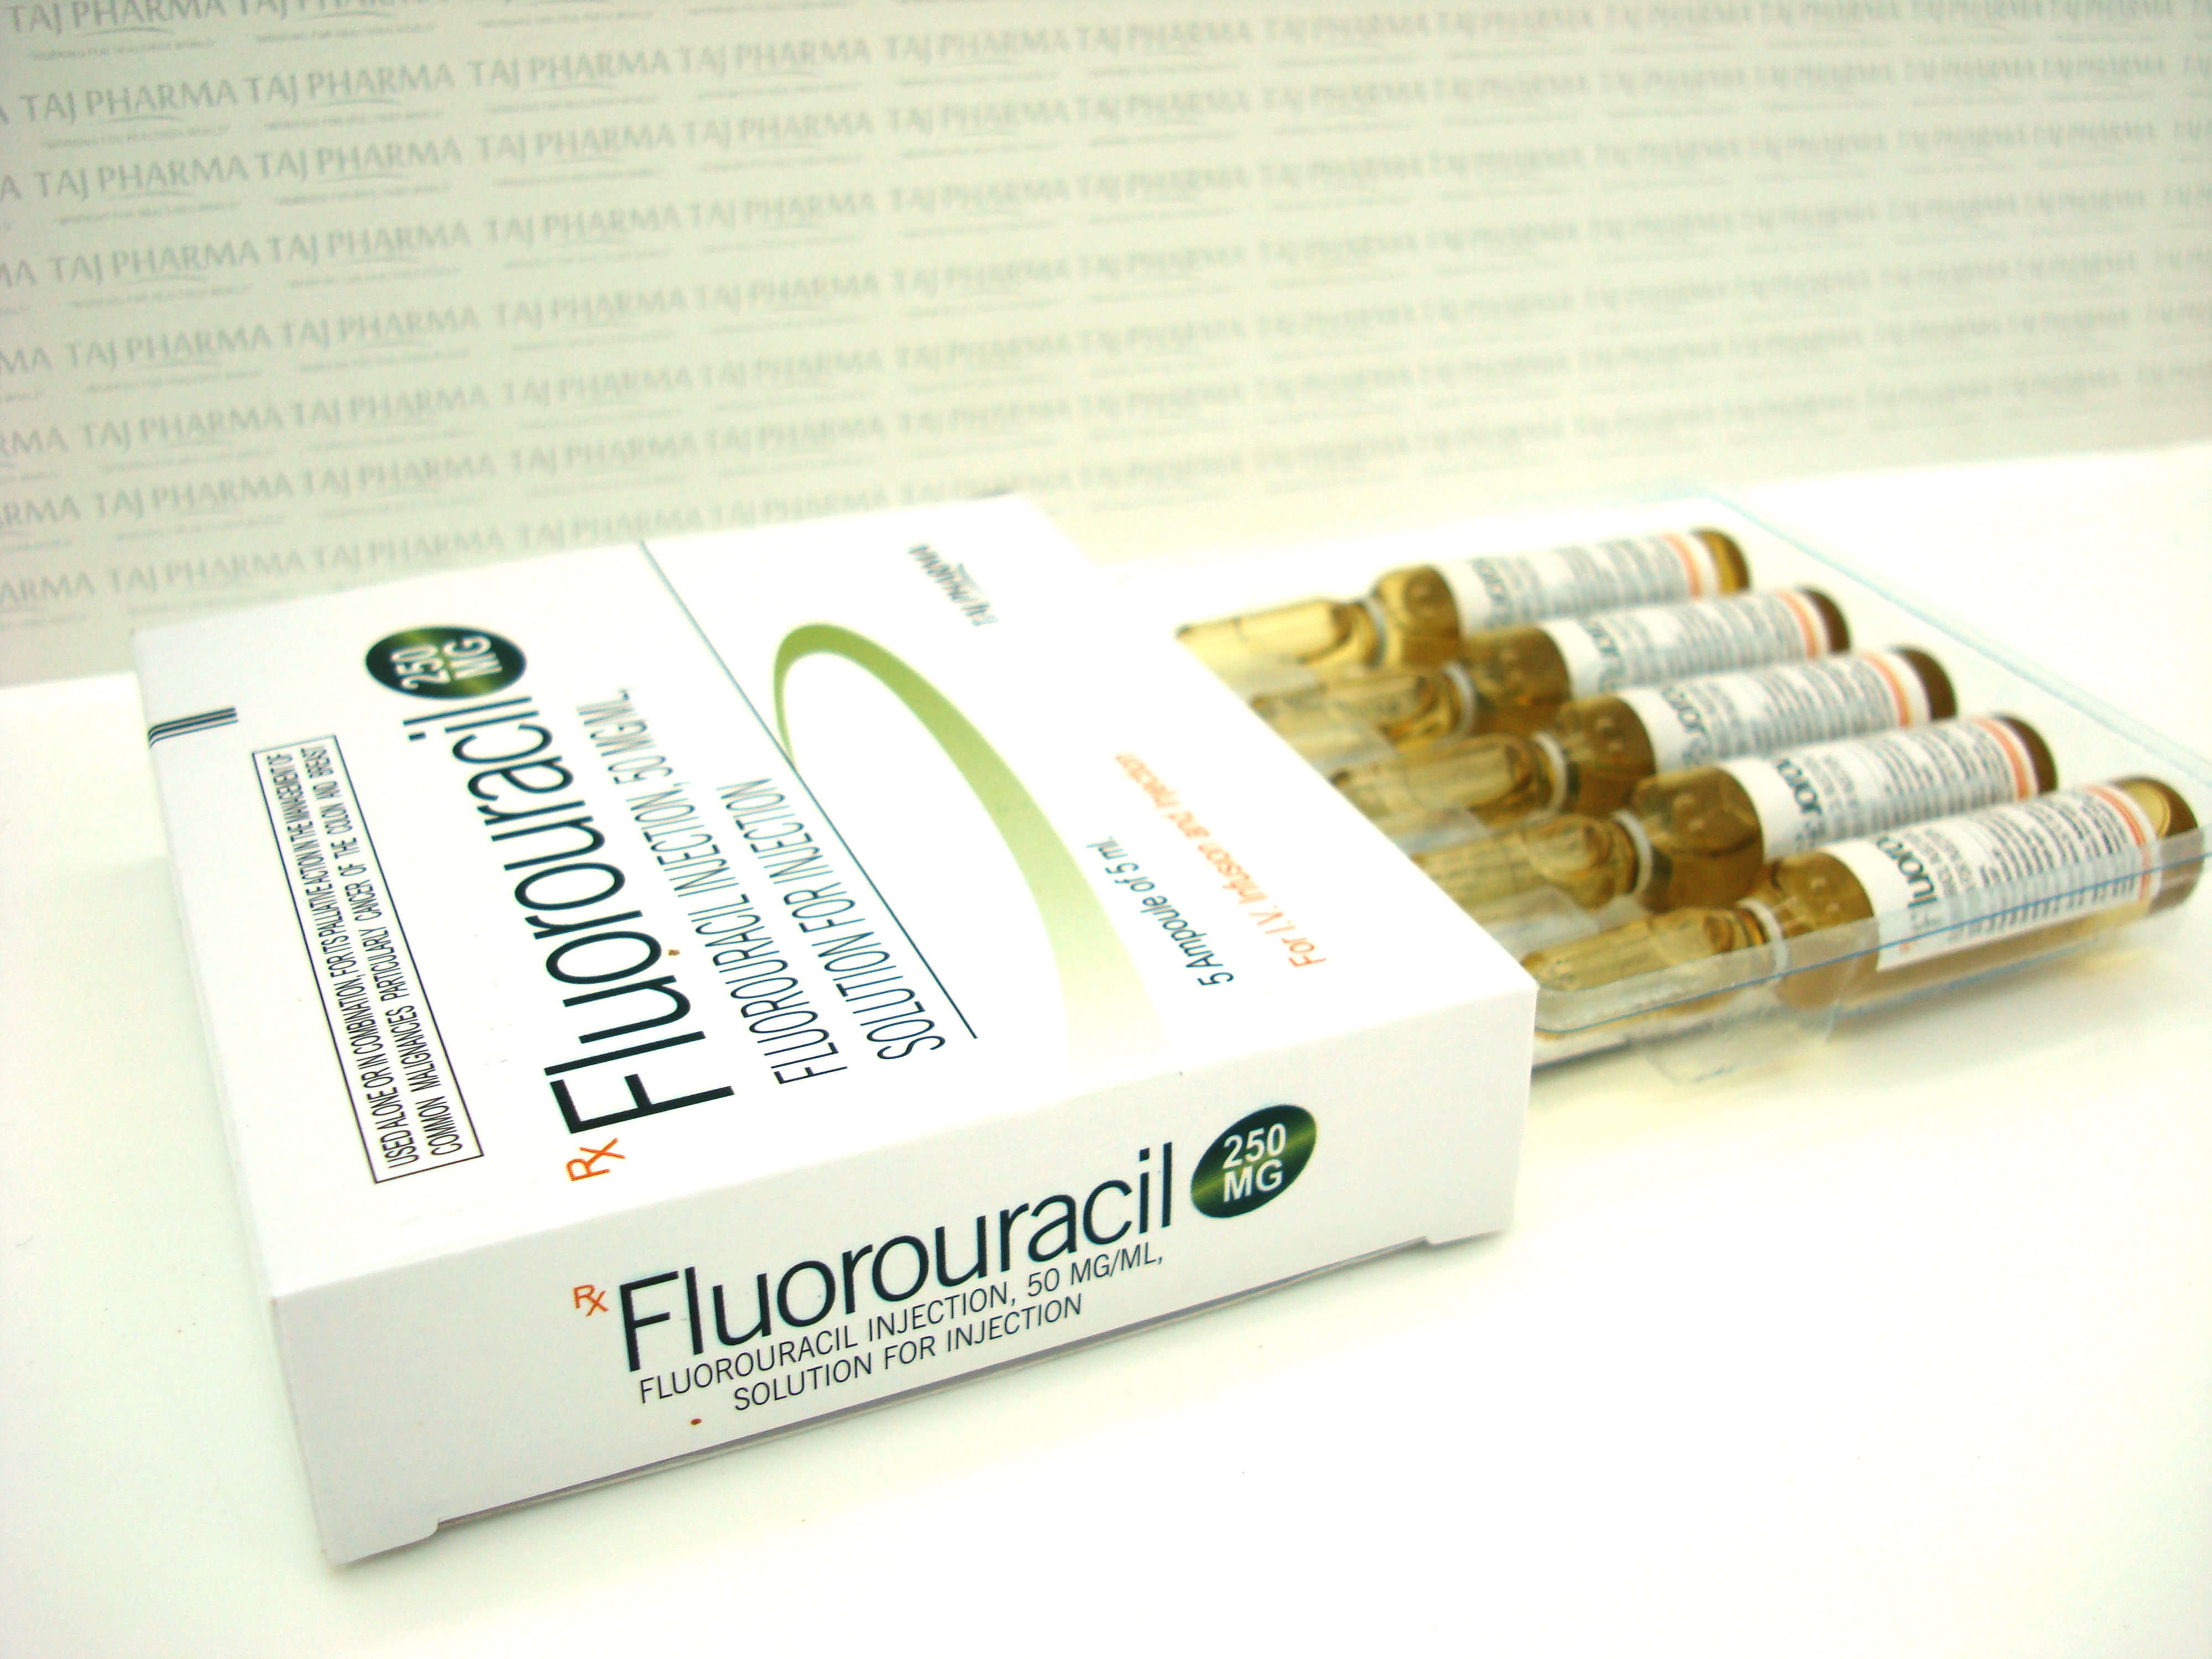 5-Fluorouracil-Injection